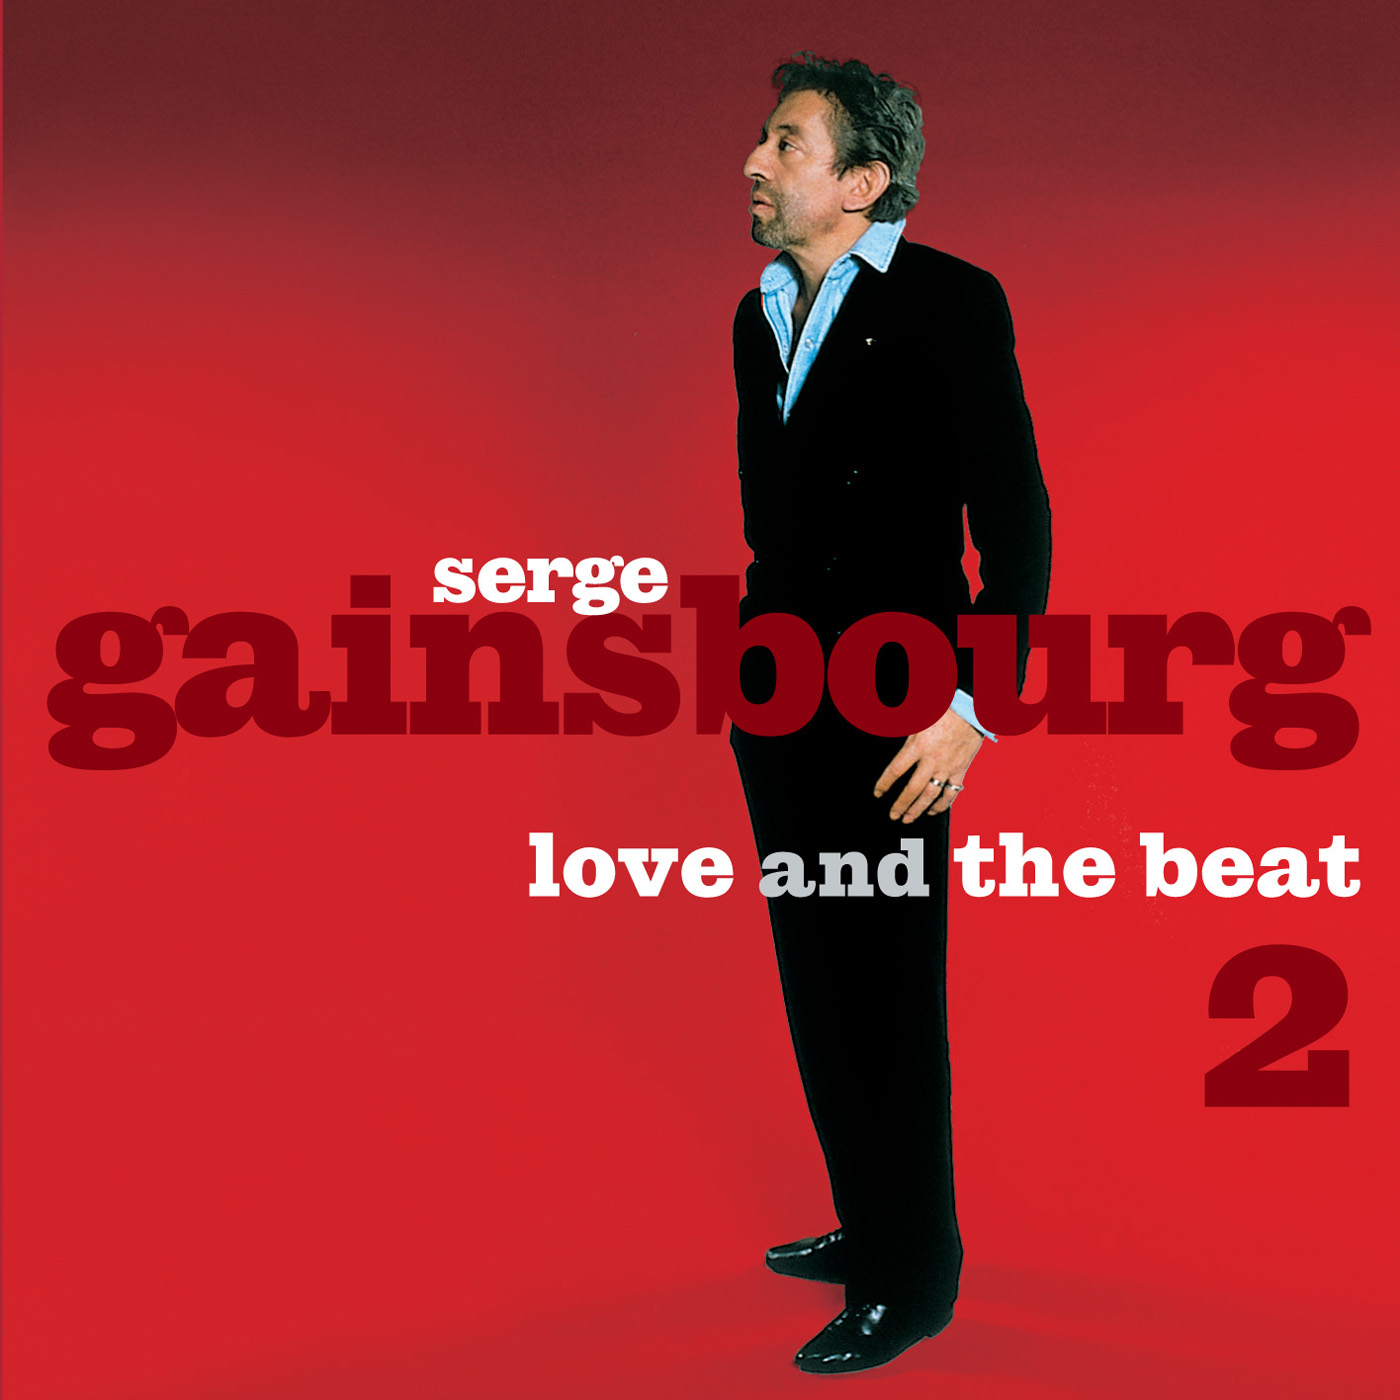 Love And The Beat 2 by Serge Gainsbourg cover